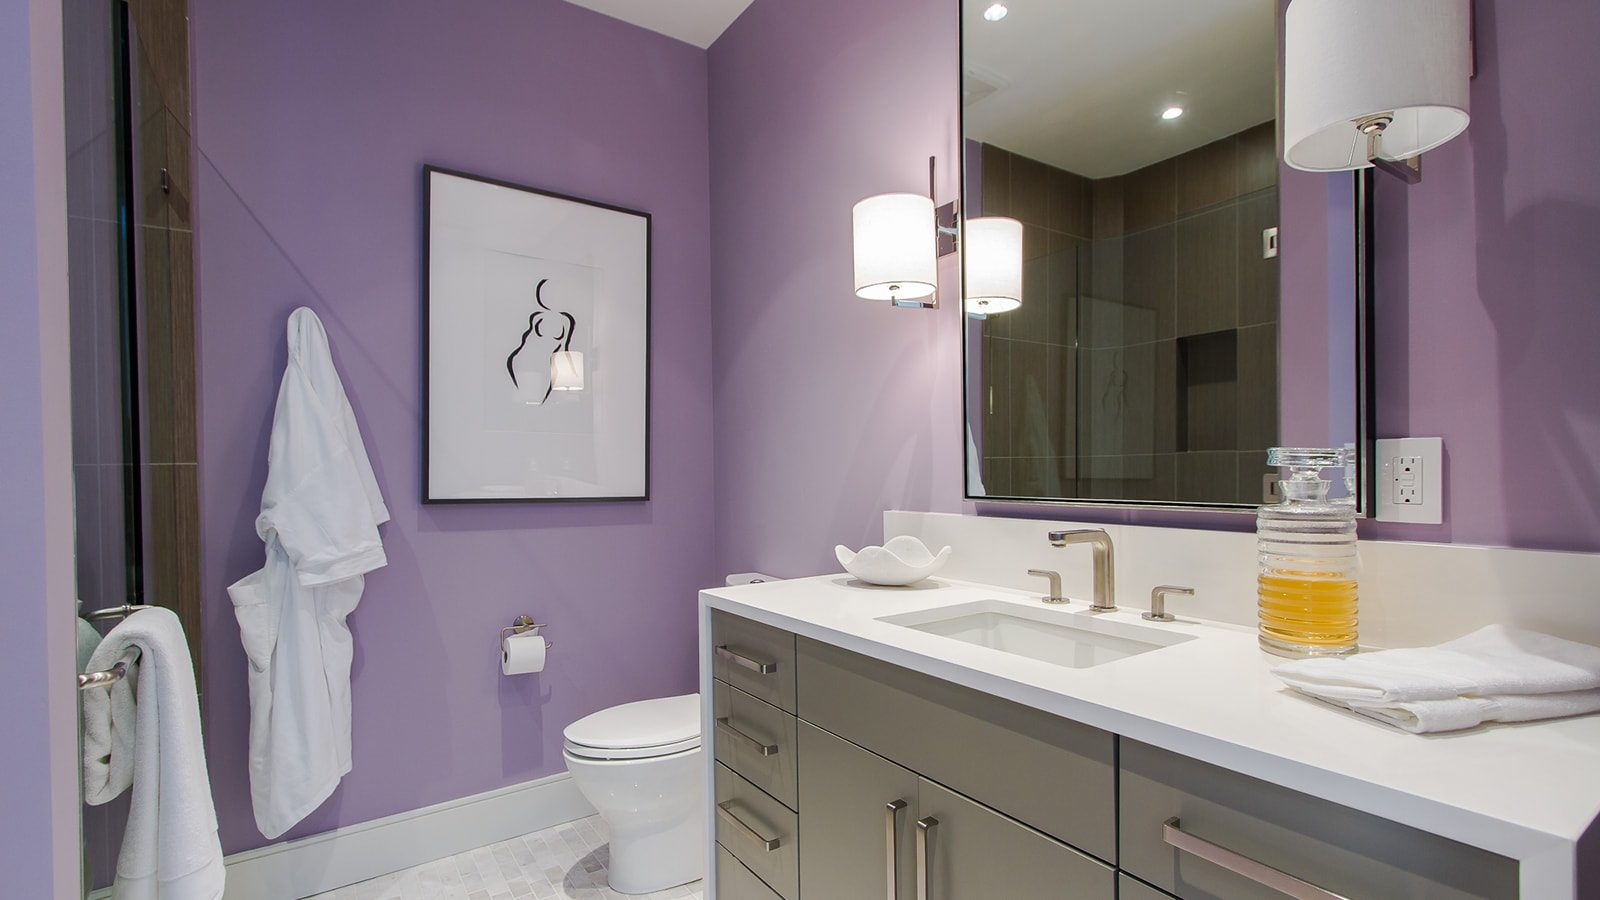 Bathroom Ideas on a Budget: 5 Design Ideas That Won't Break the Bank!